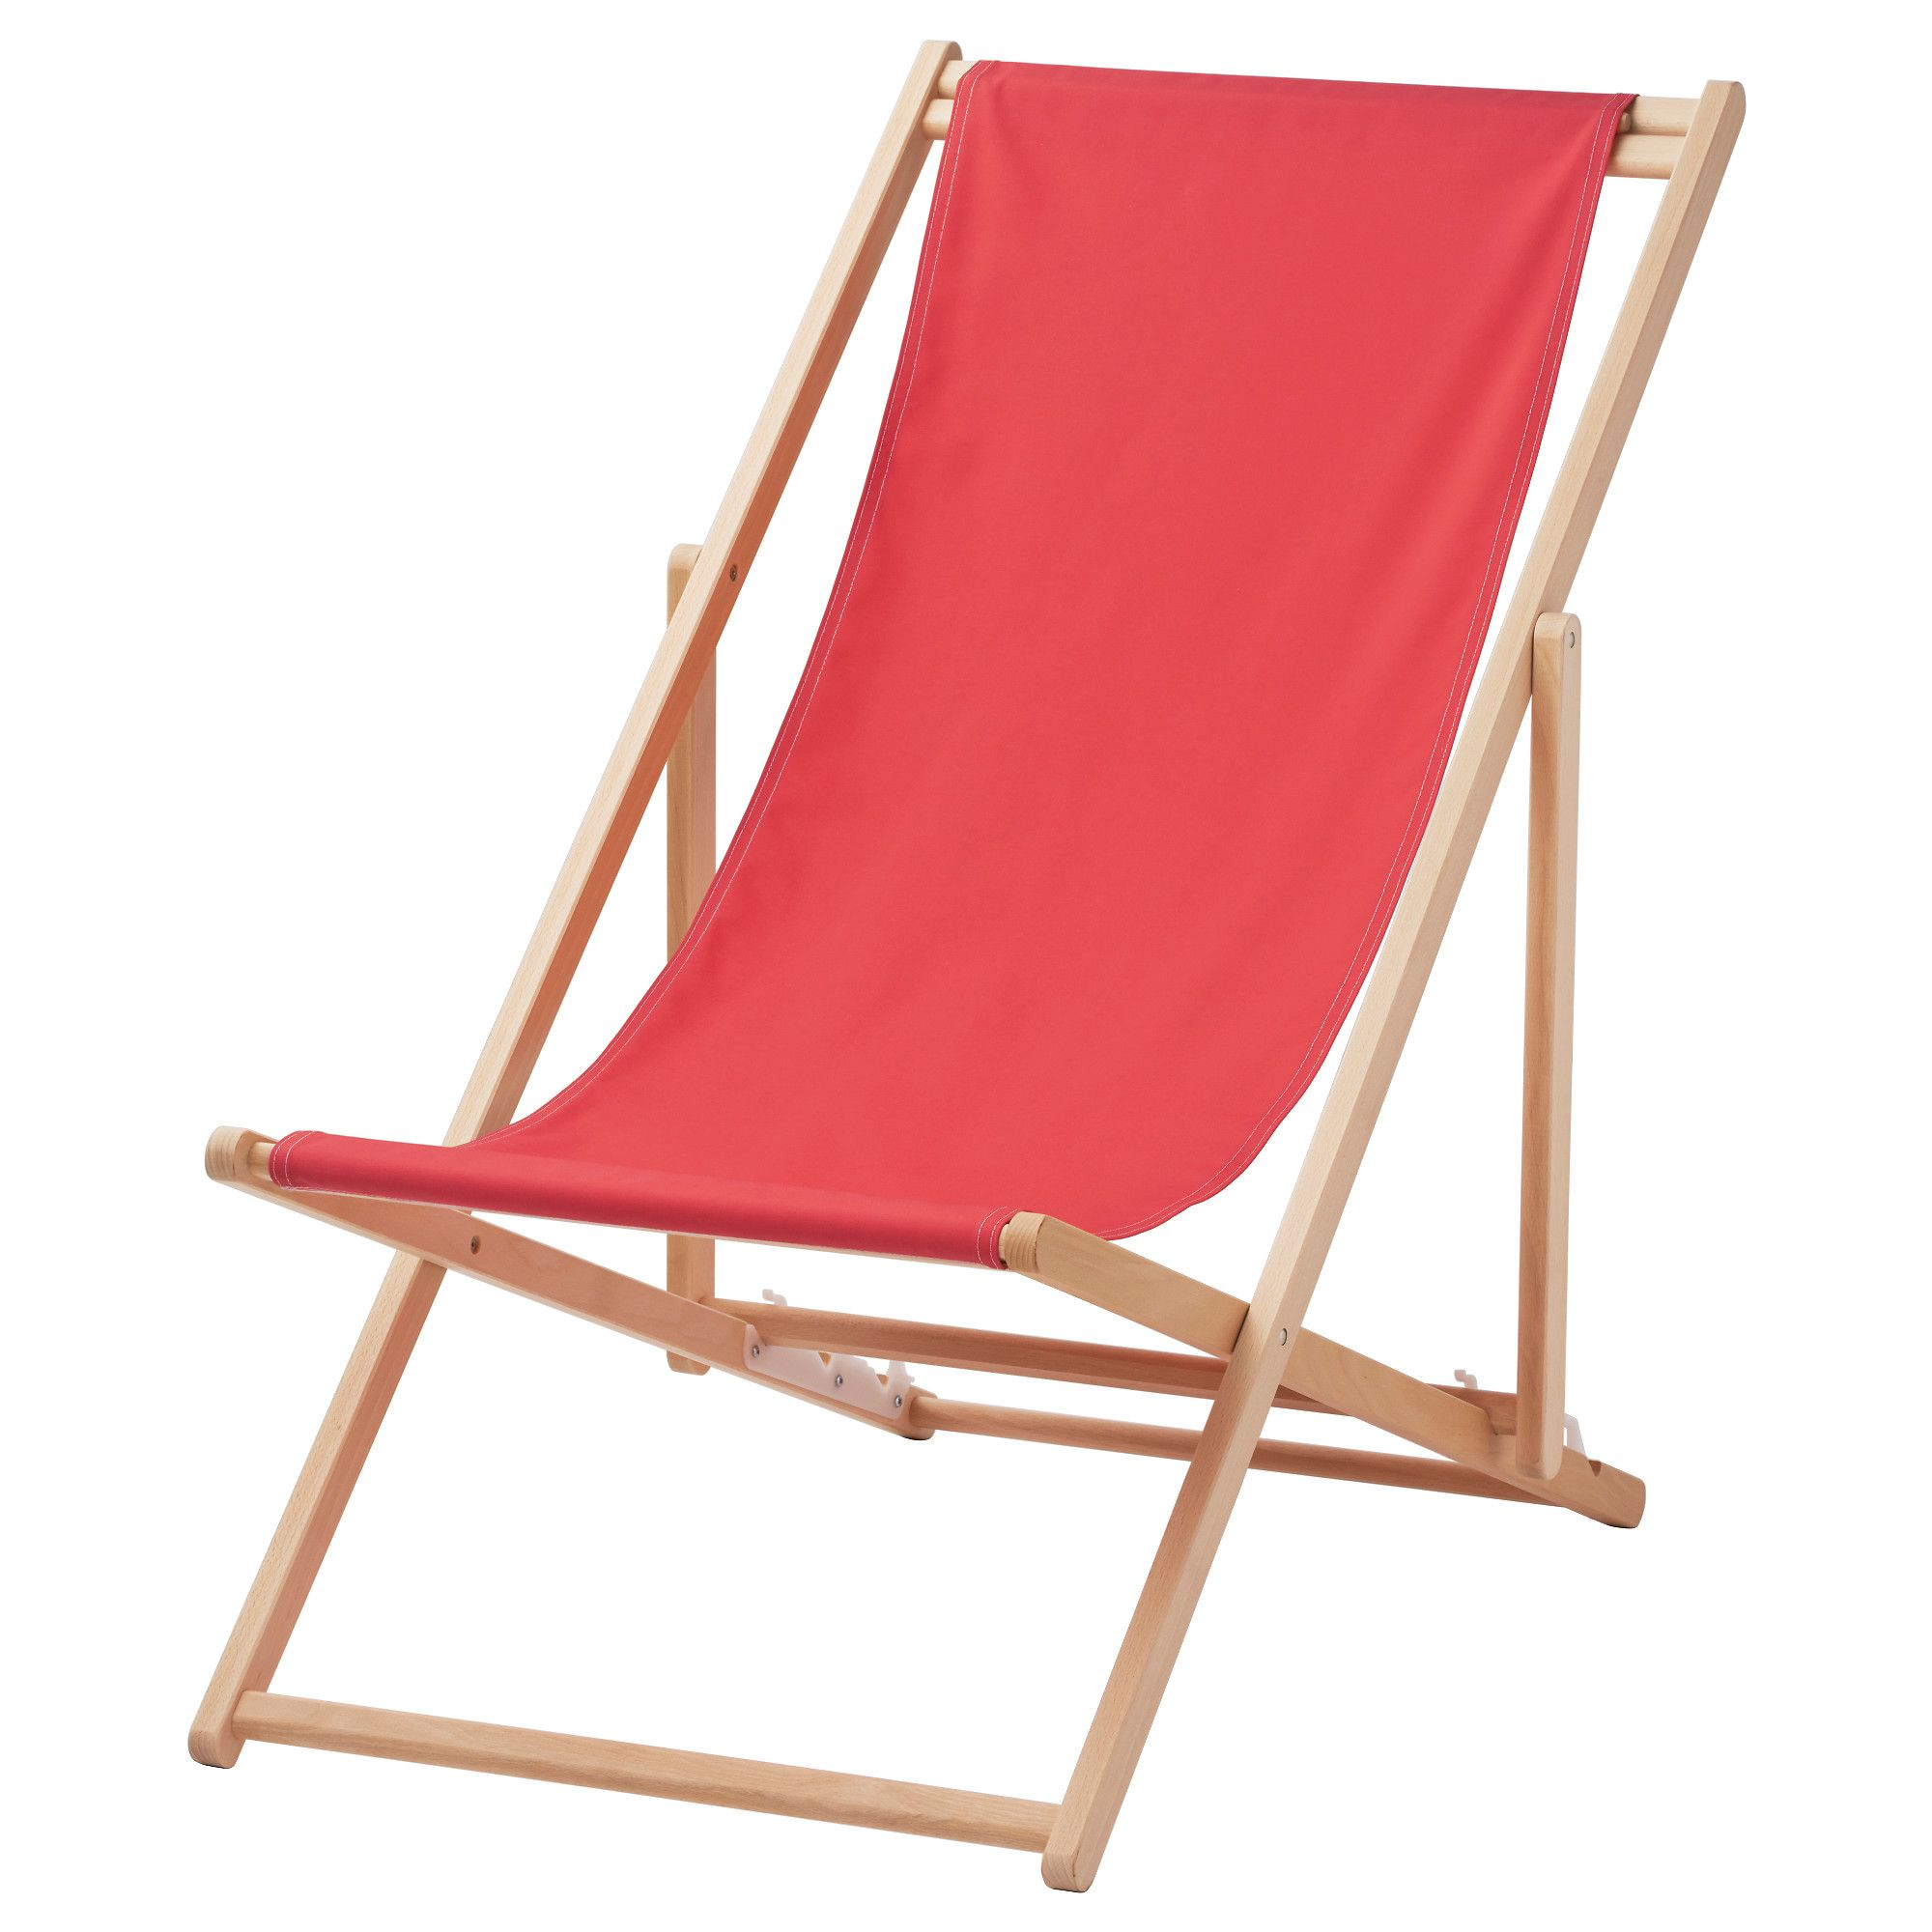 Silla Plegable Madera Ikea MysingsÖ Beach Chair Folding Red Ikea Sillas Tumbonas